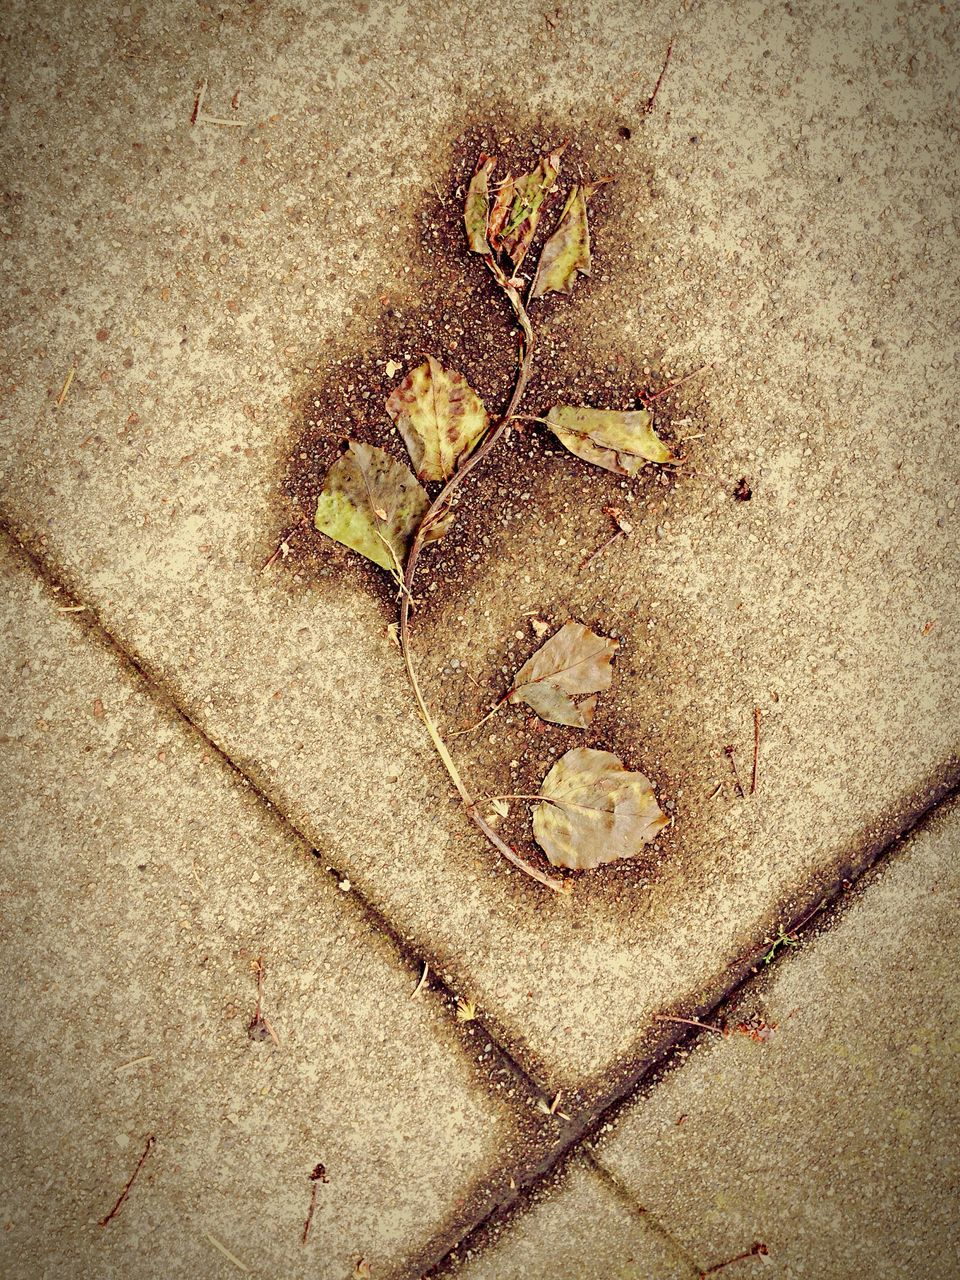 leaf, high angle view, dry, sand, no people, nature, autumn, outdoors, day, fragility, close-up, beach, maple